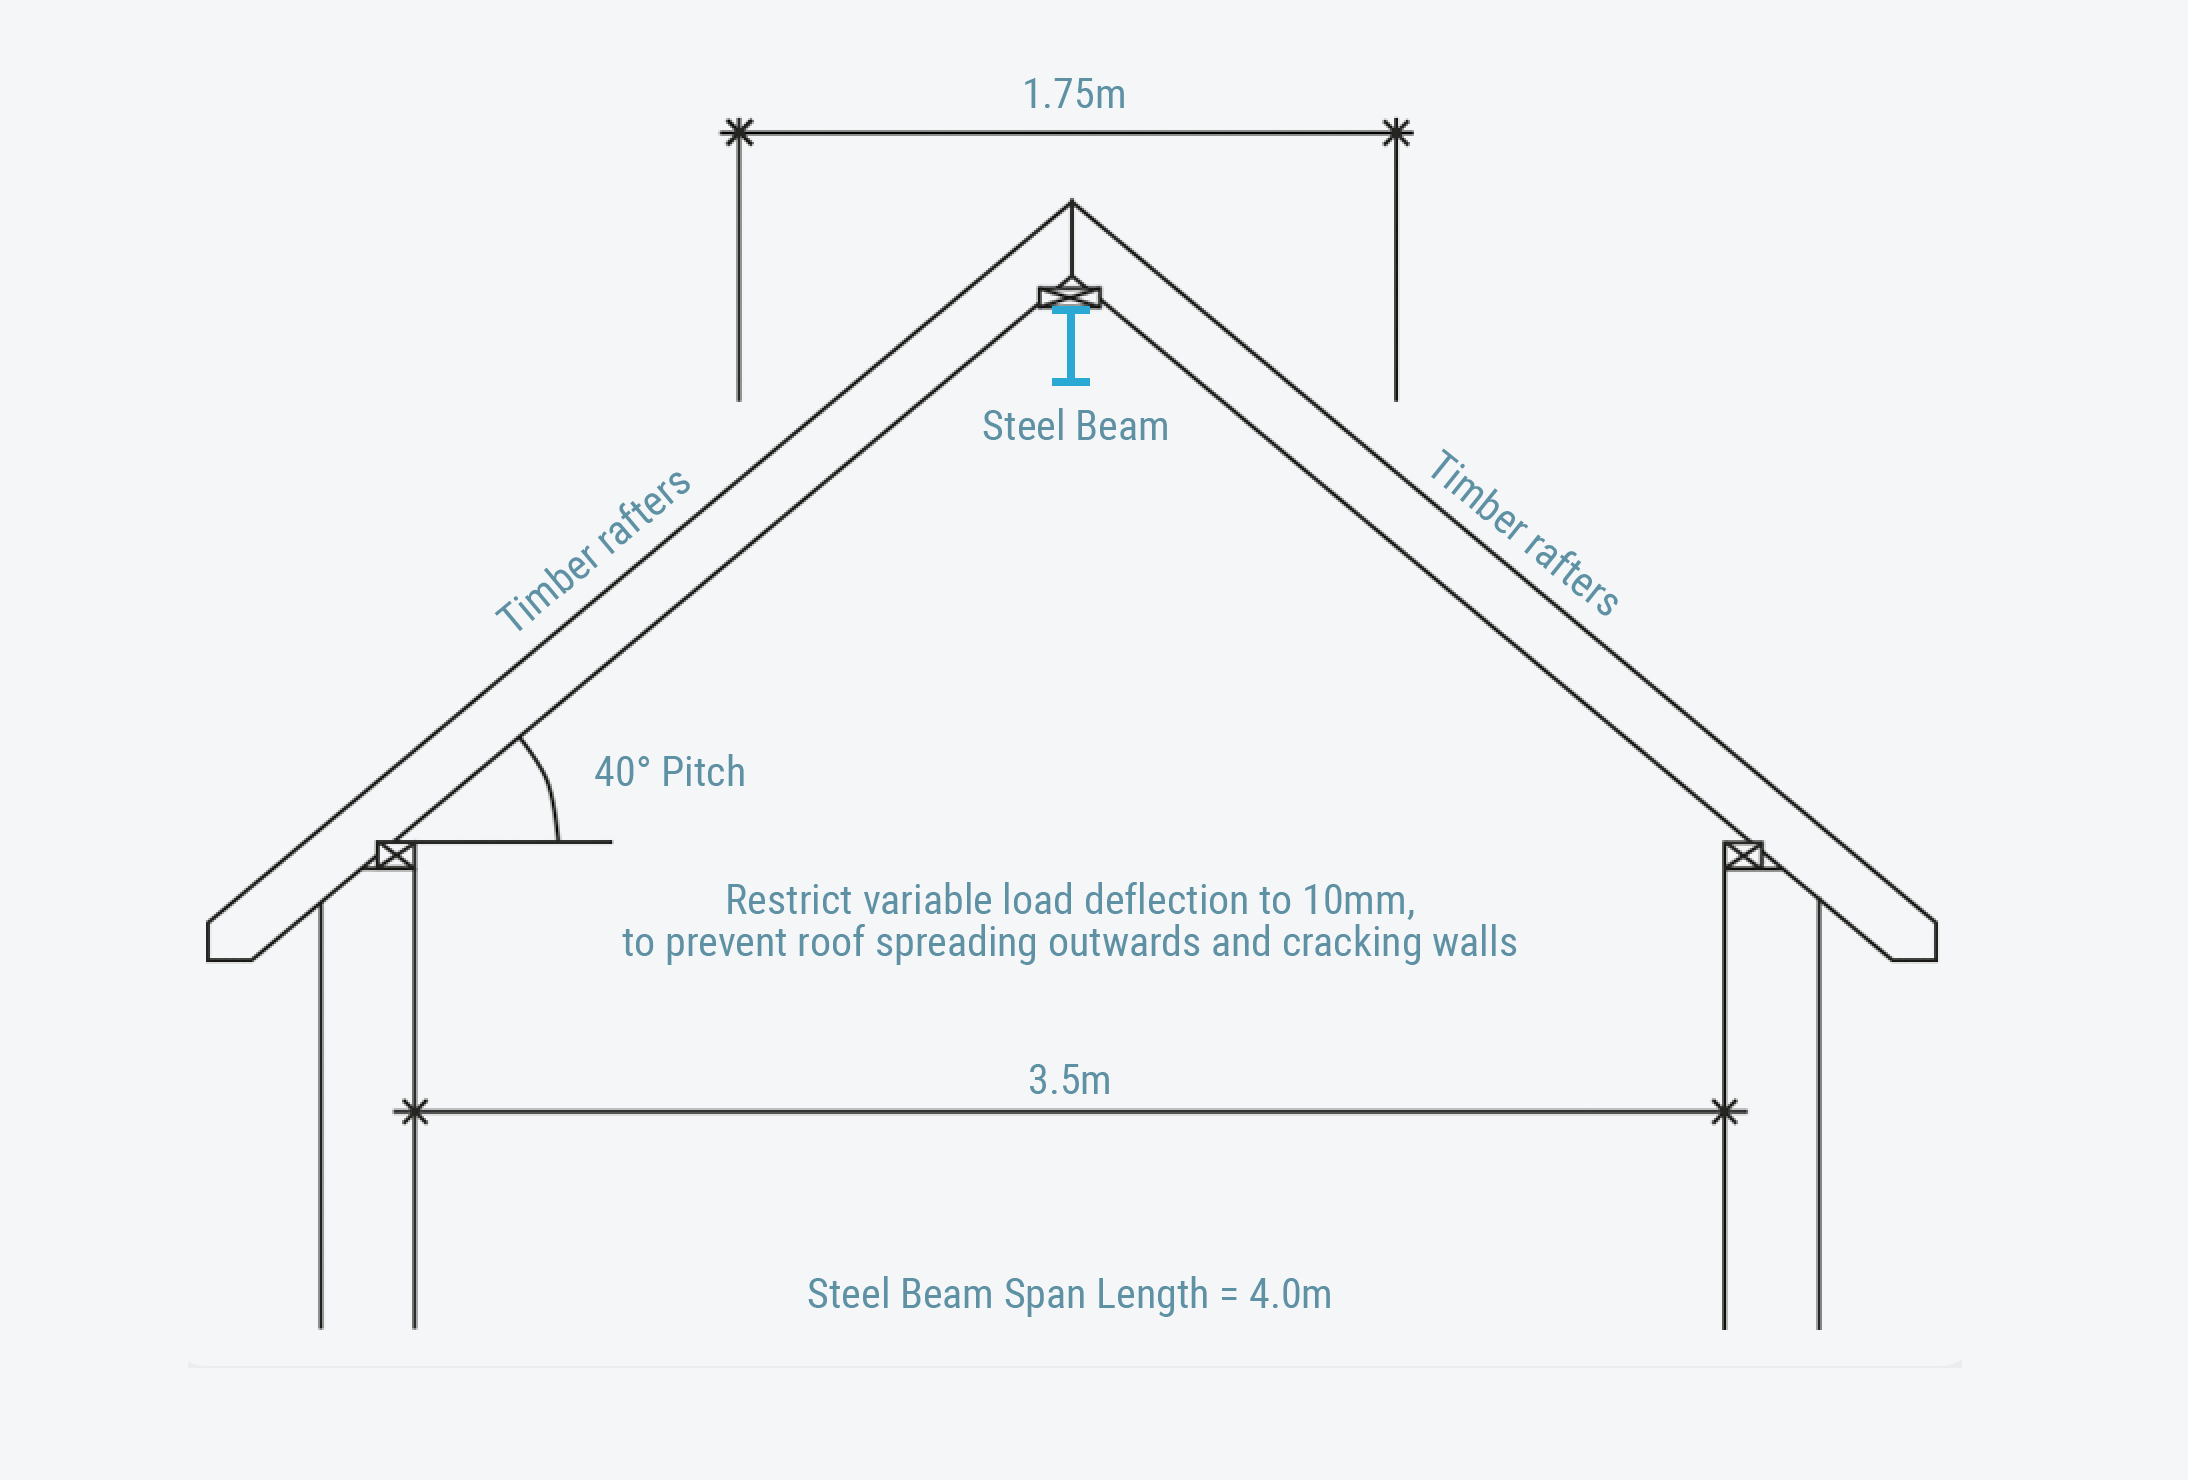 steel beam calculations for steel ridge beam